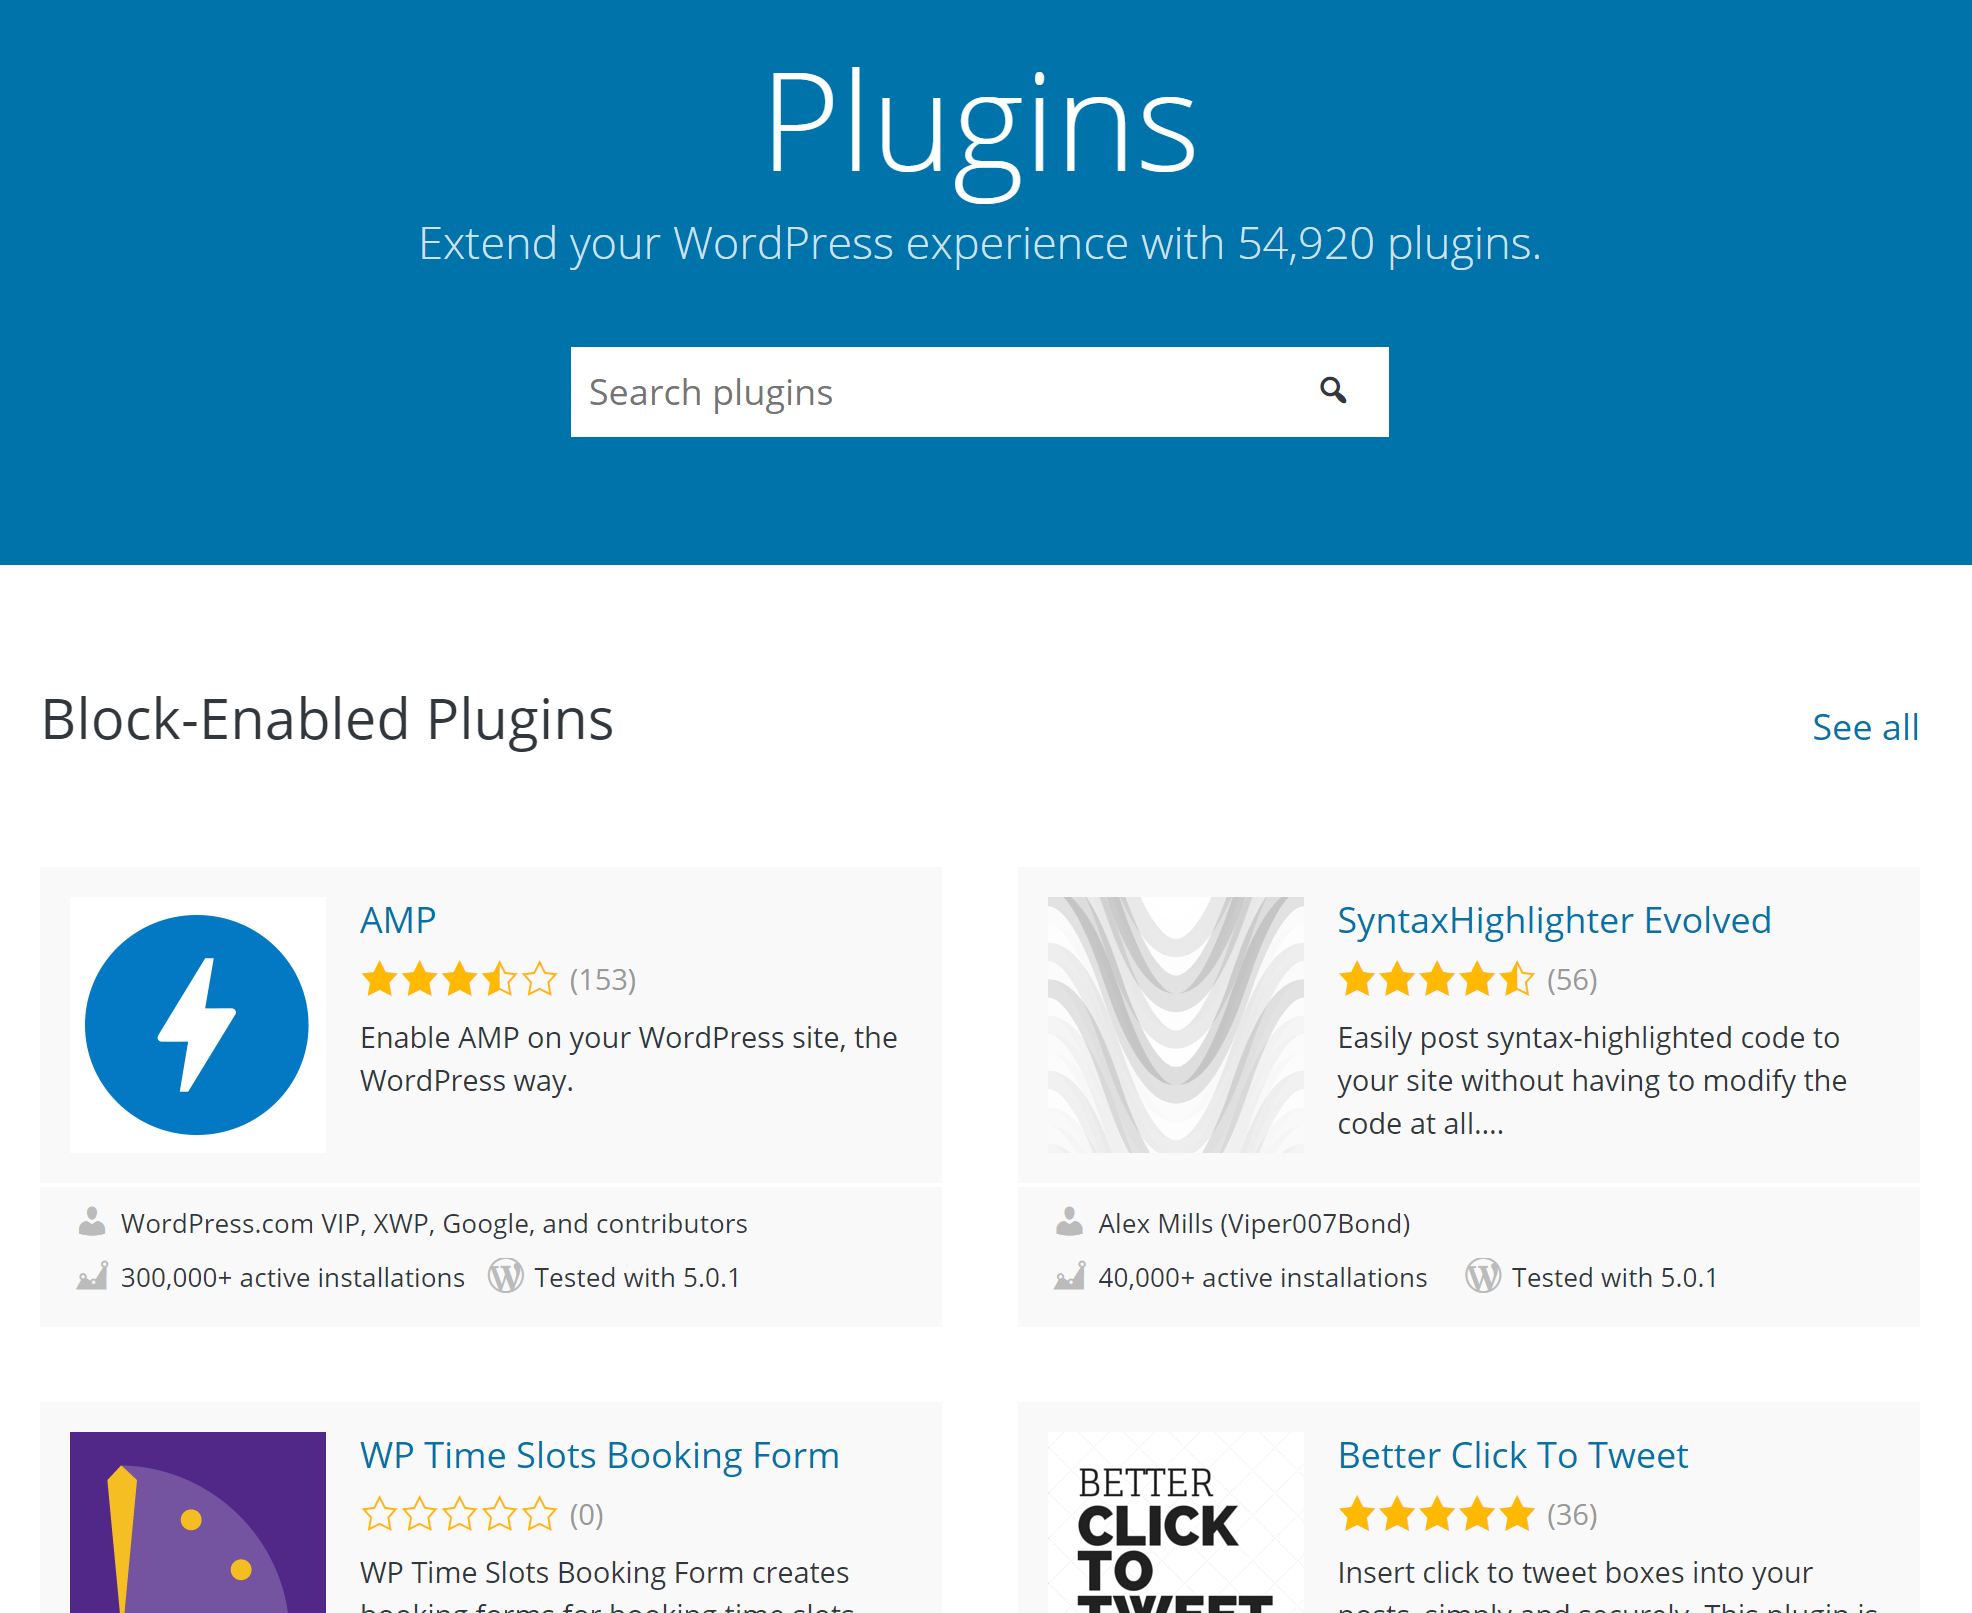 the Block-Enabled Plugins list now appears first on the main .org plugins page